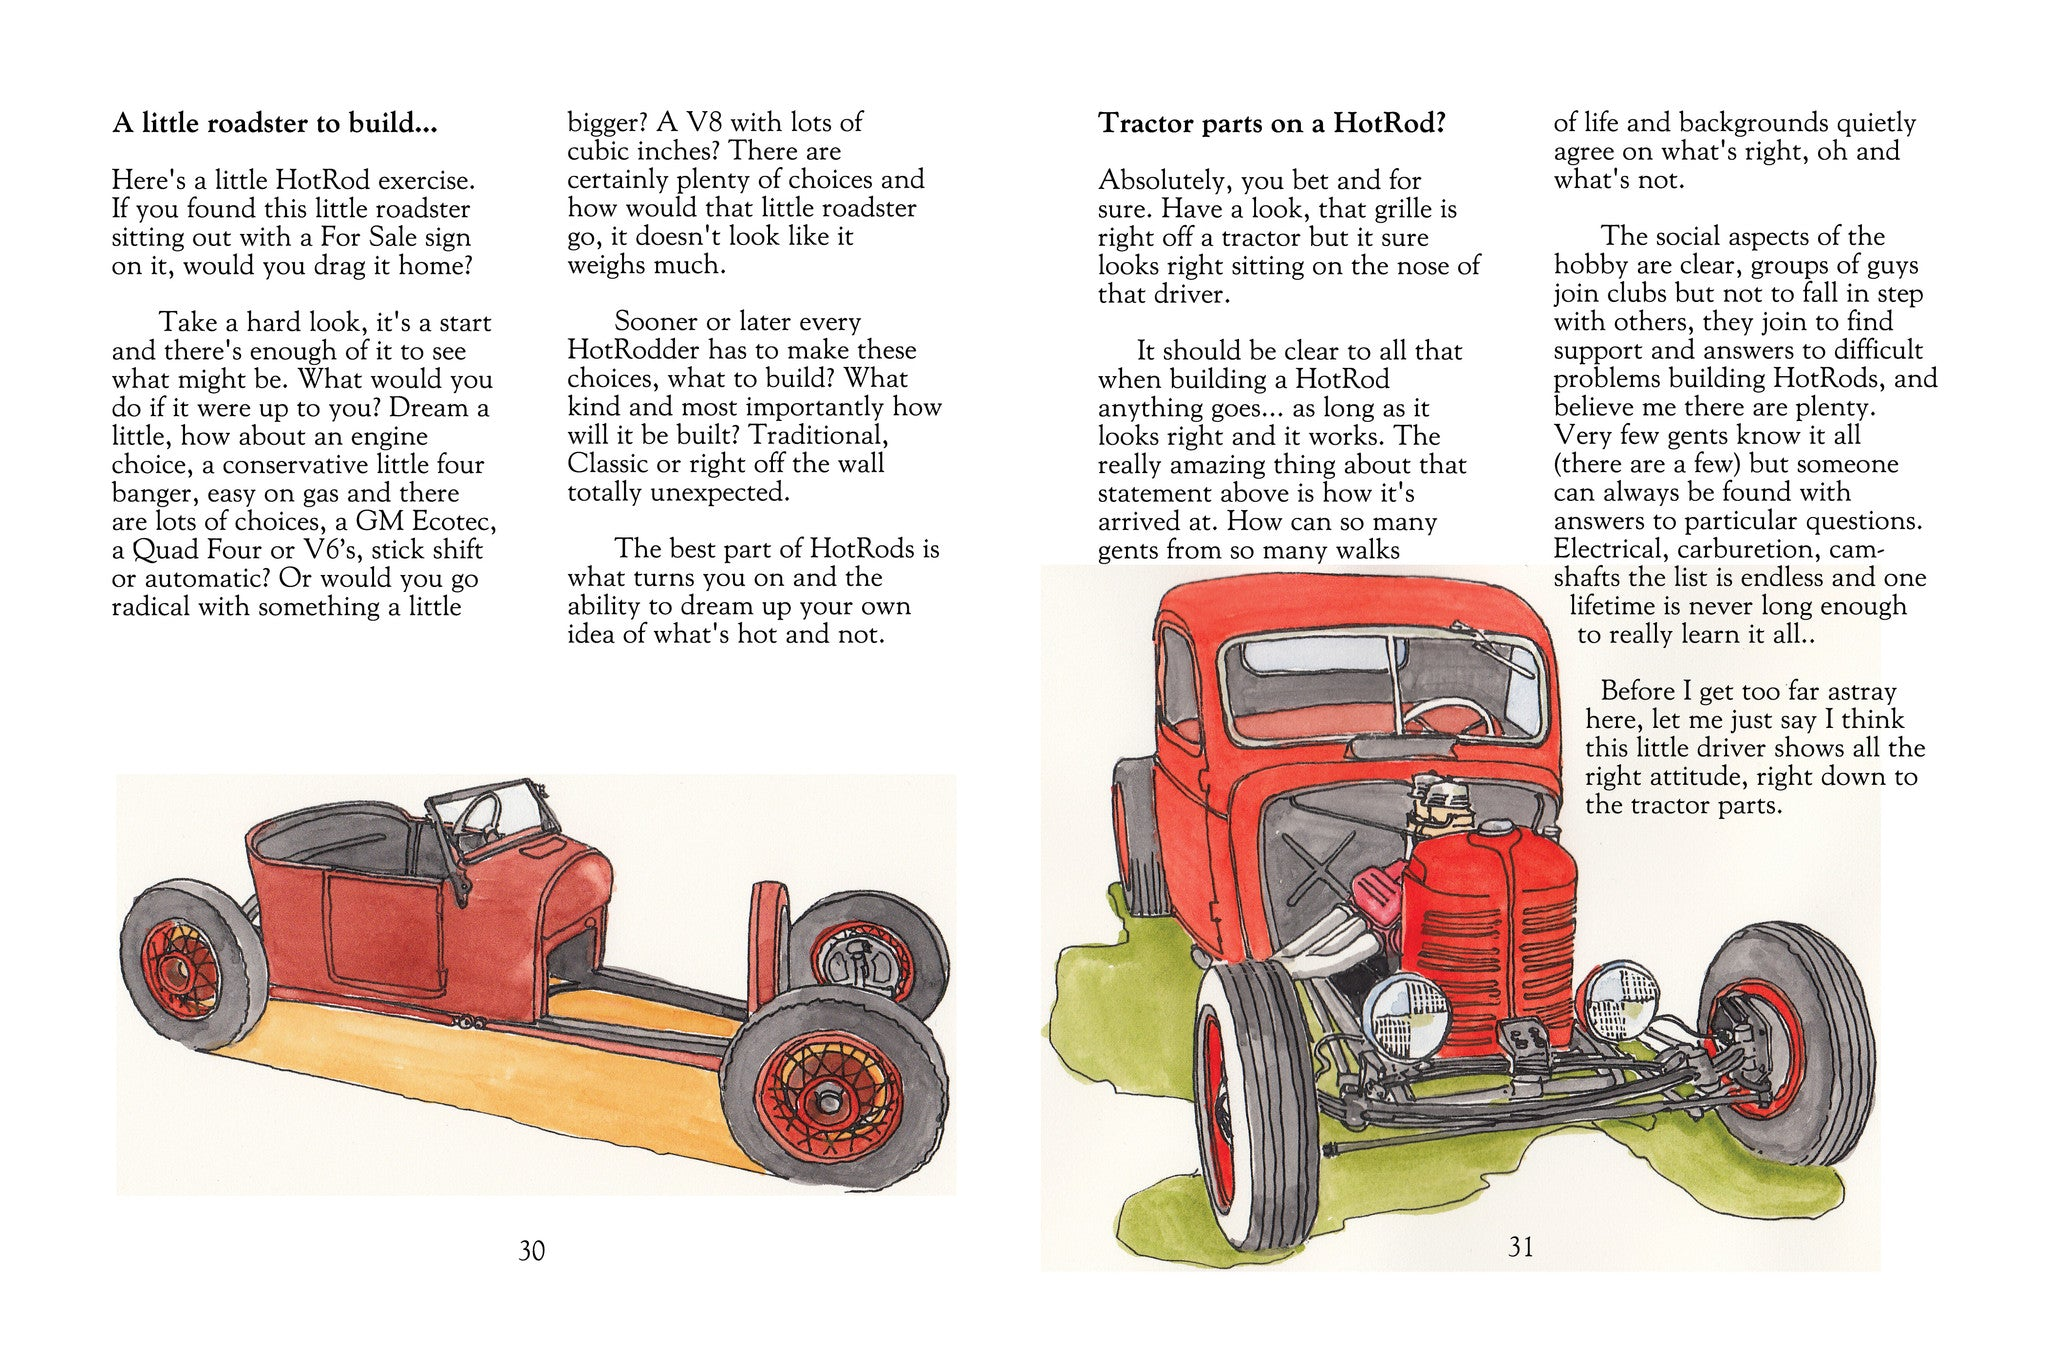 The Great American Hot Rod Explained